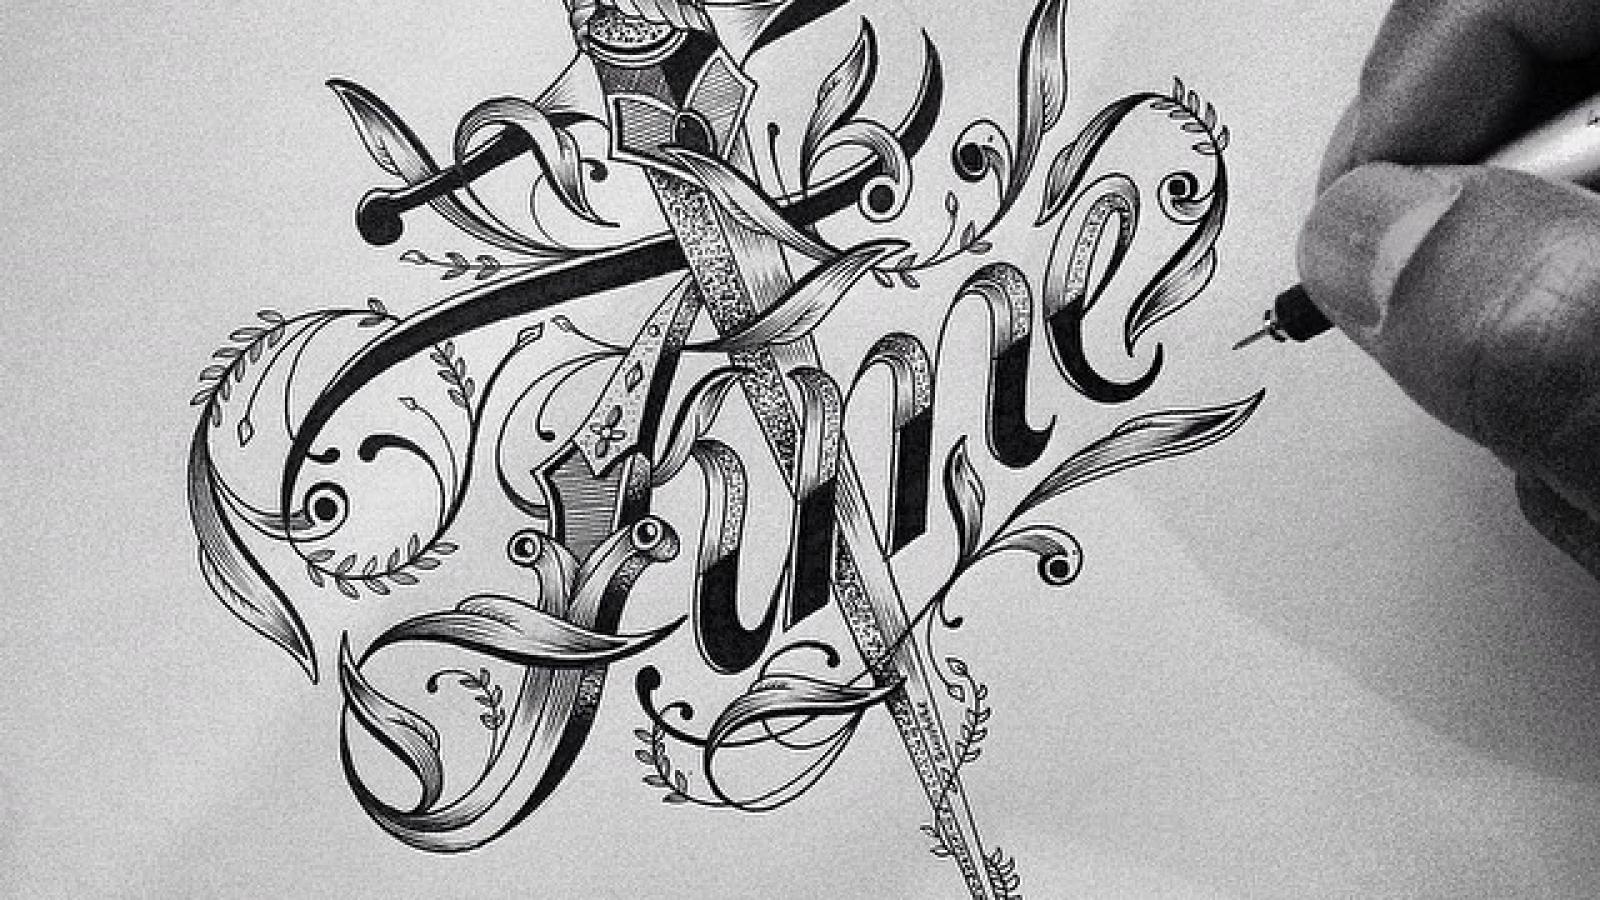 Beautiful typography sketches